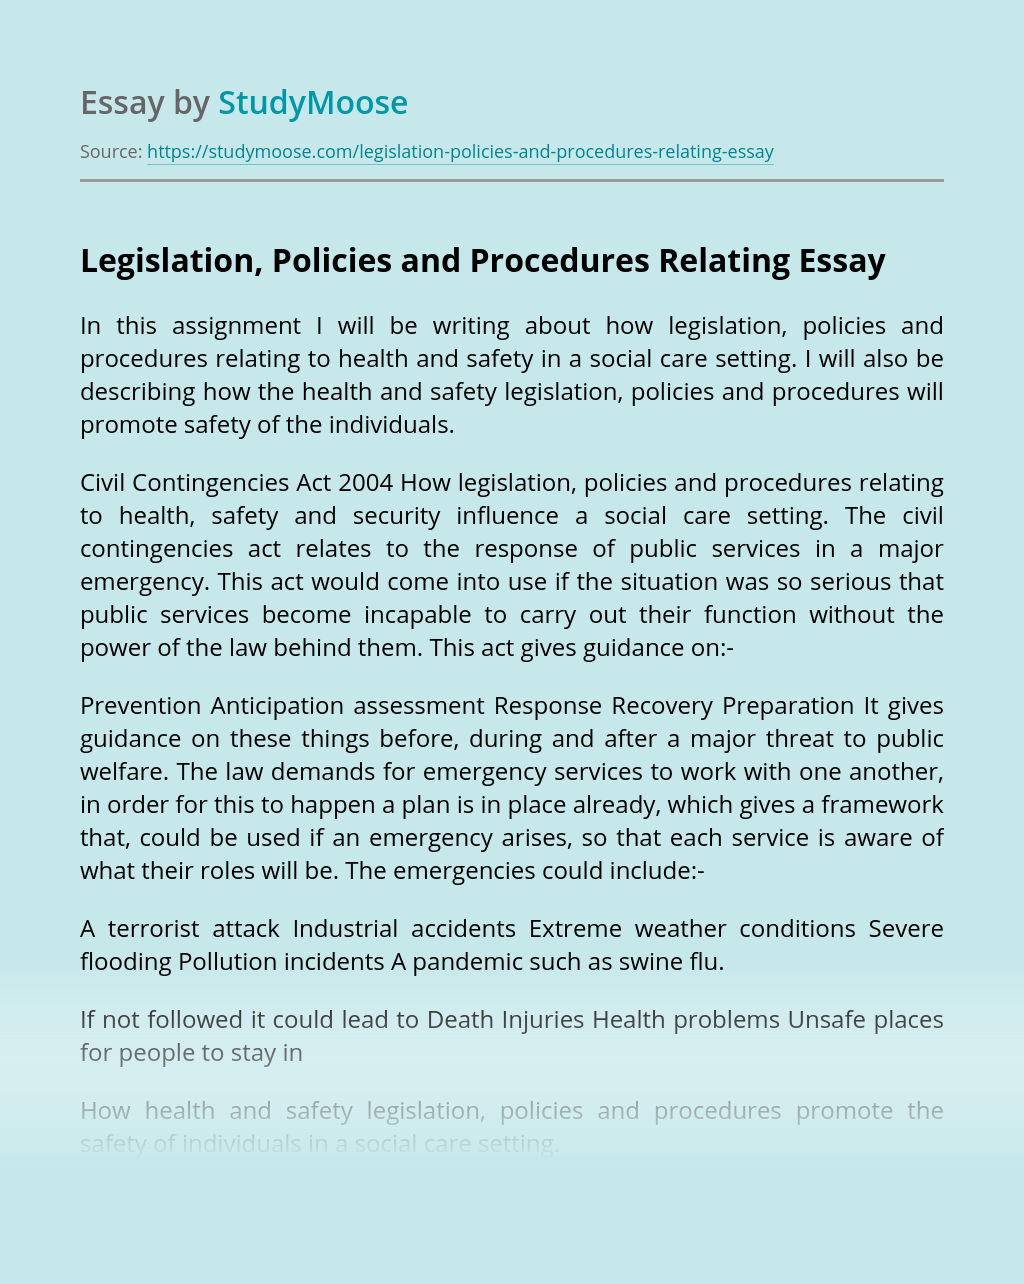 Legislation, Policies and Procedures Relating